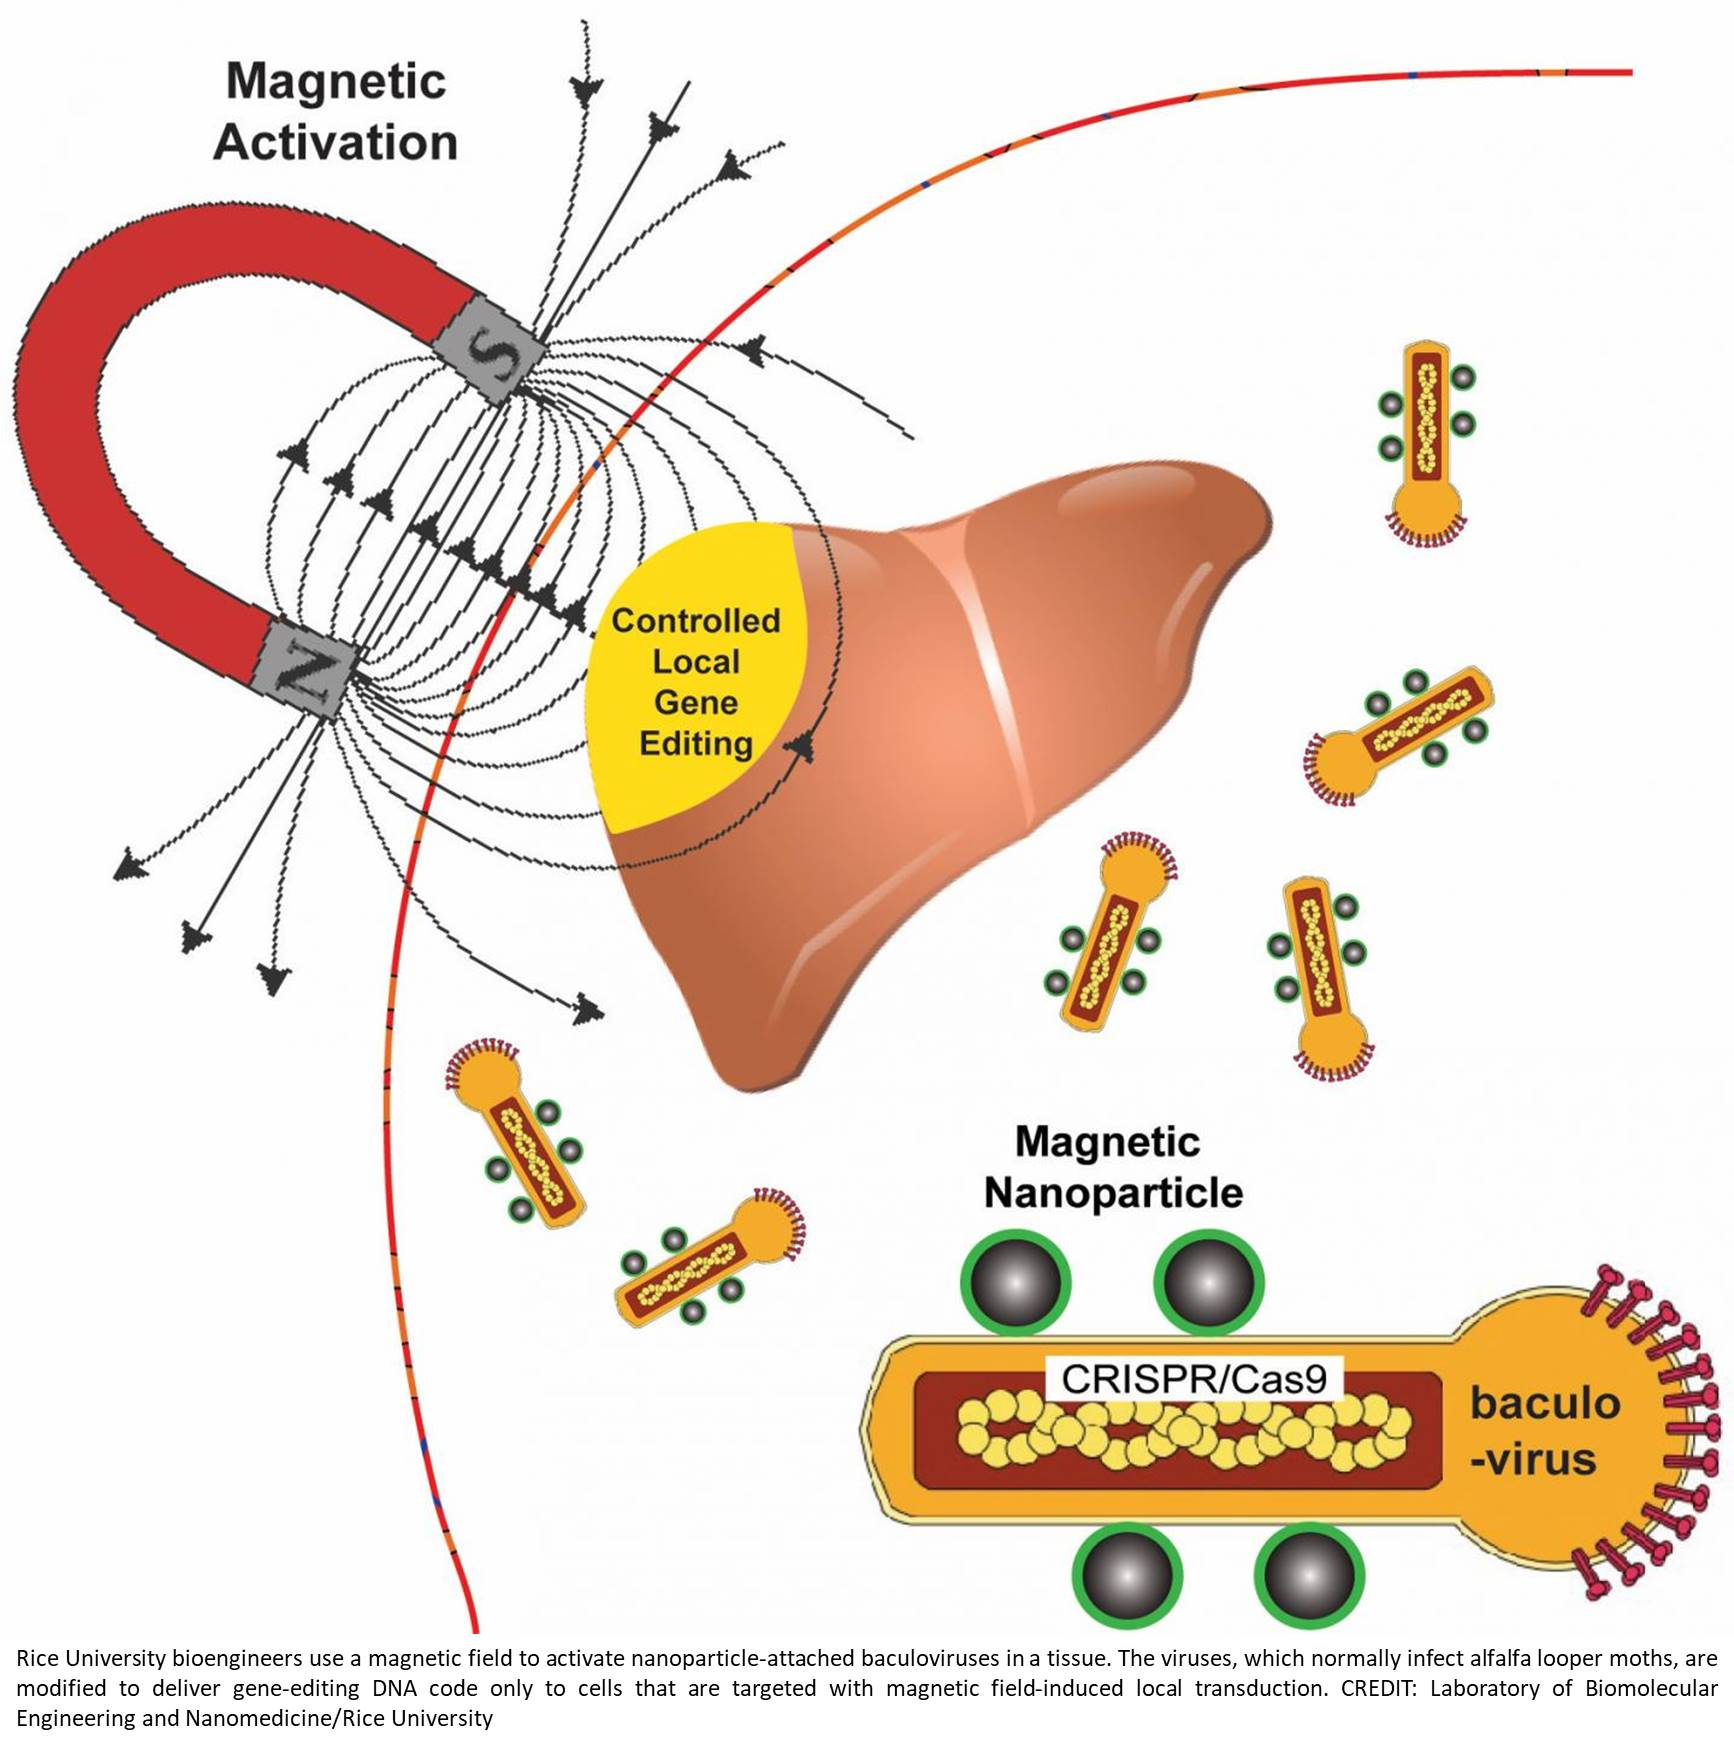 Controlled gene editing with magnetic particles